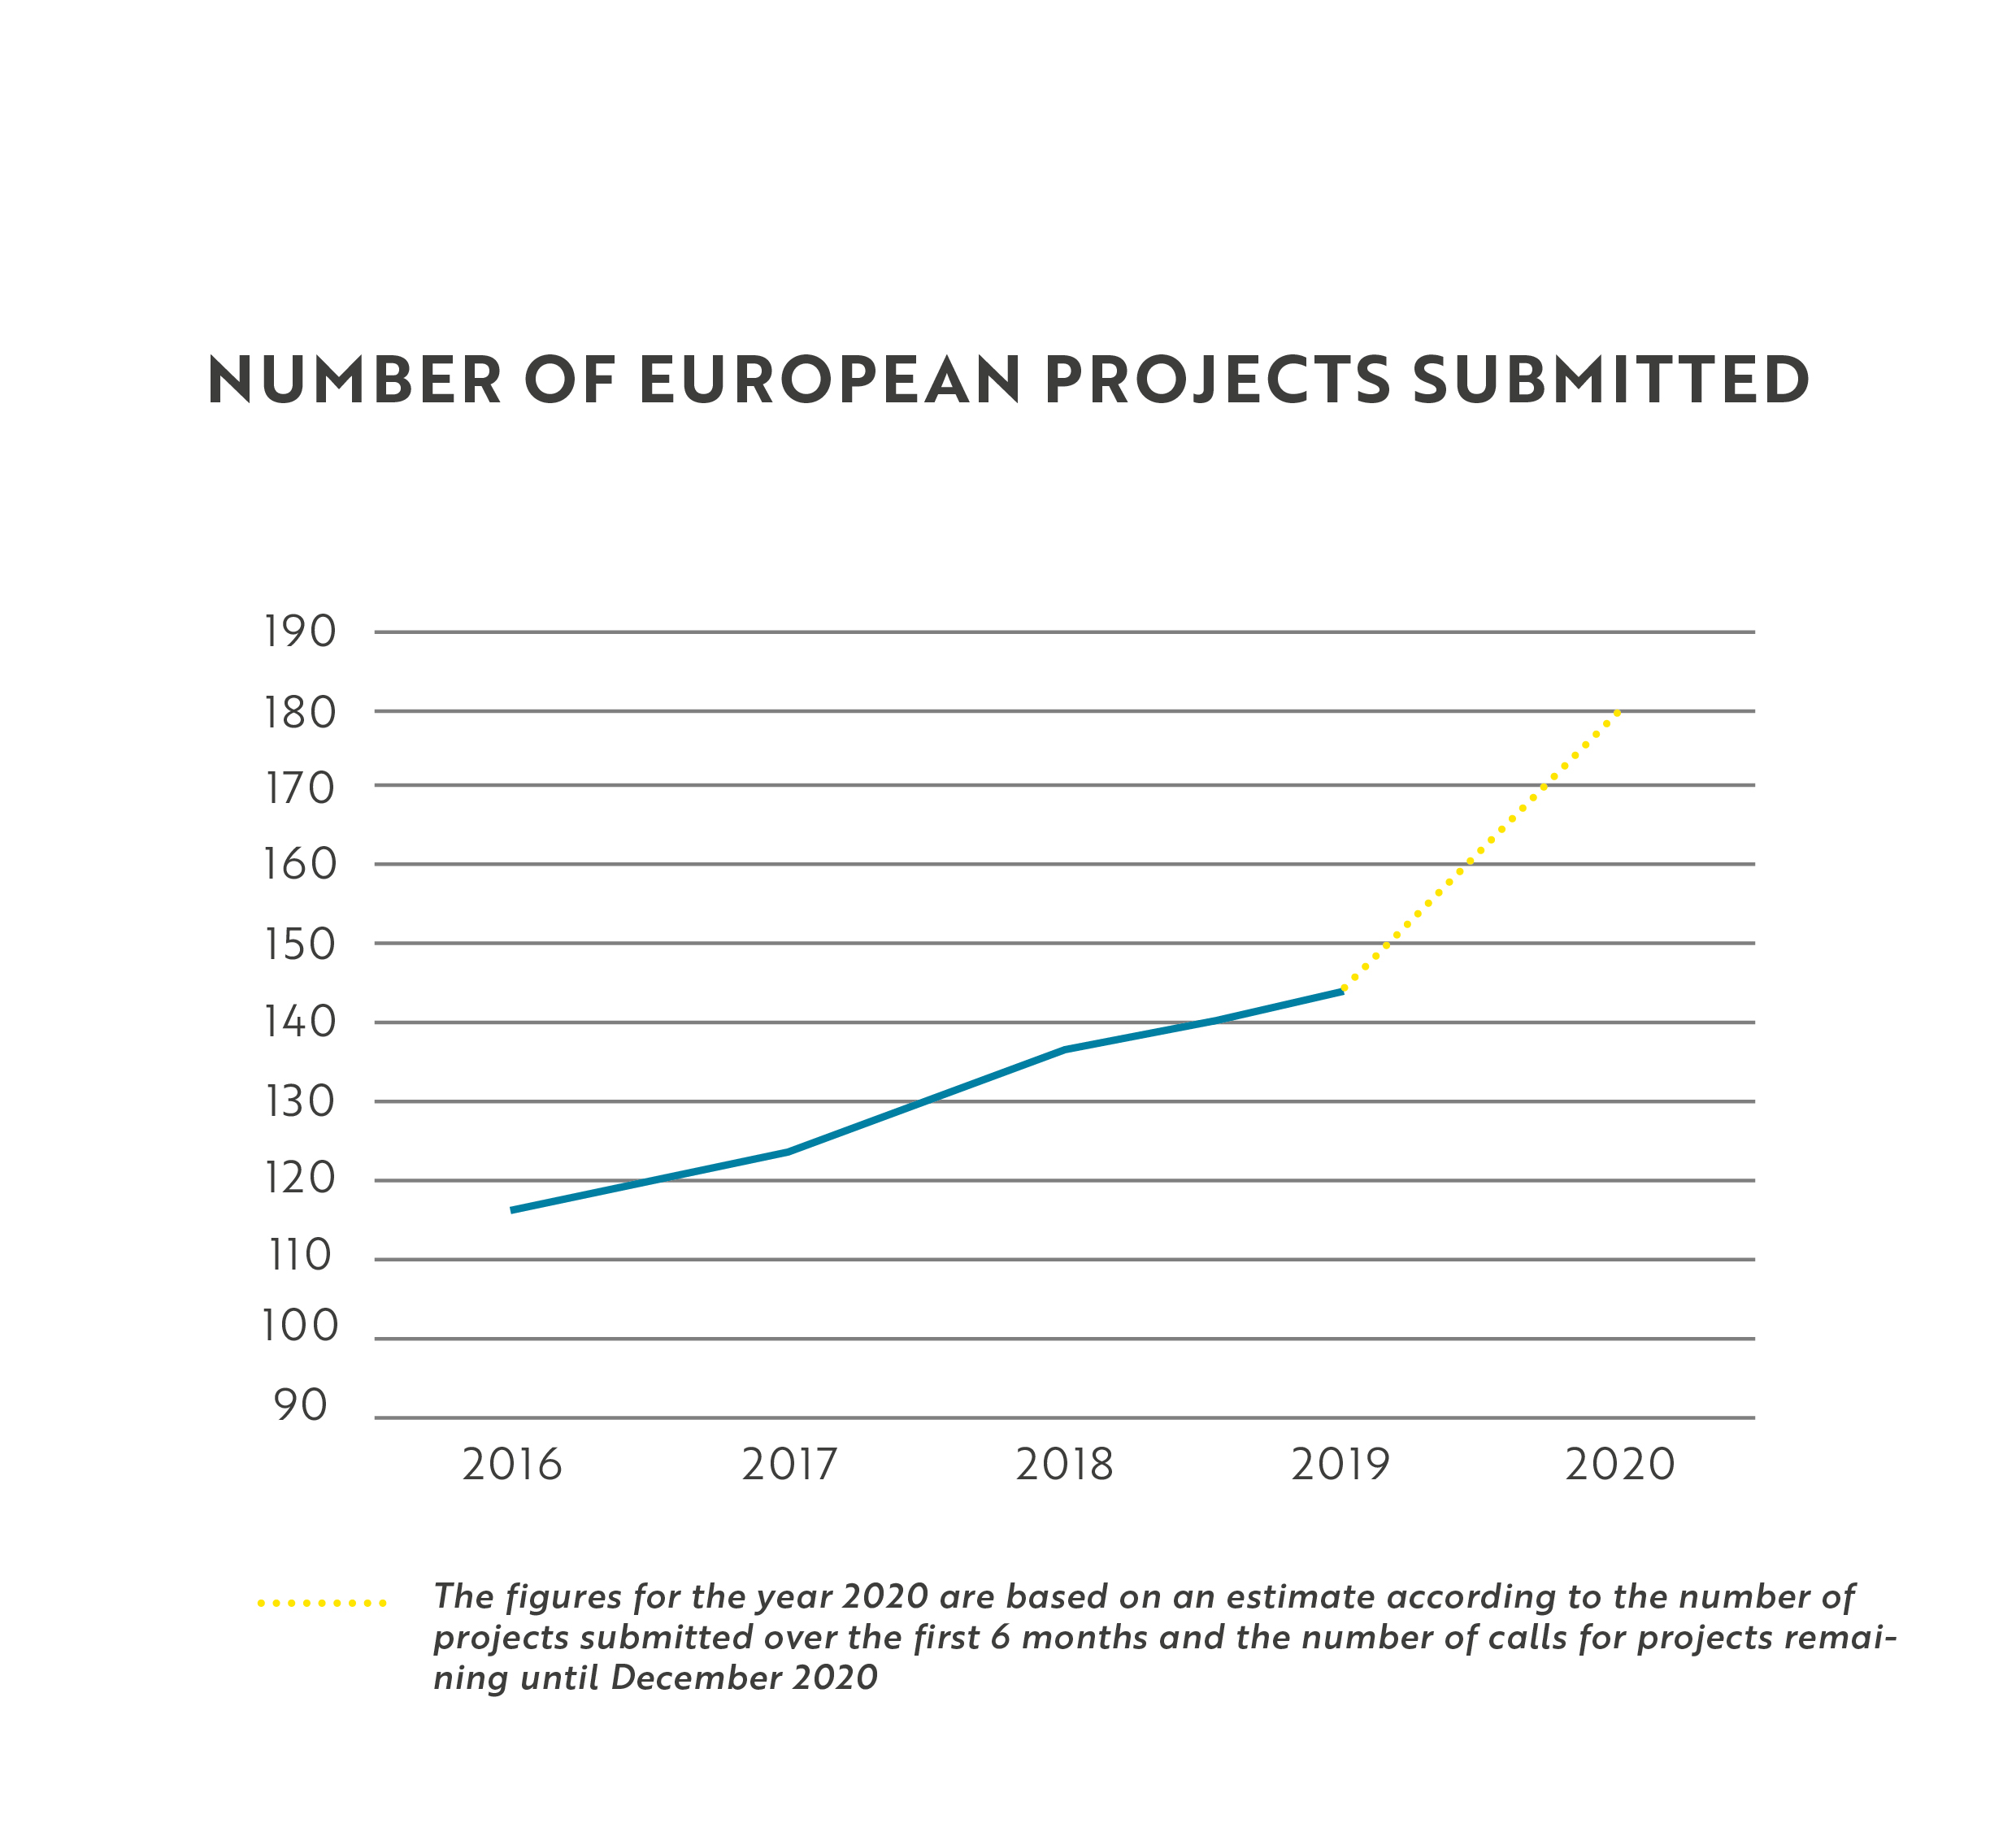 Submitted European projects